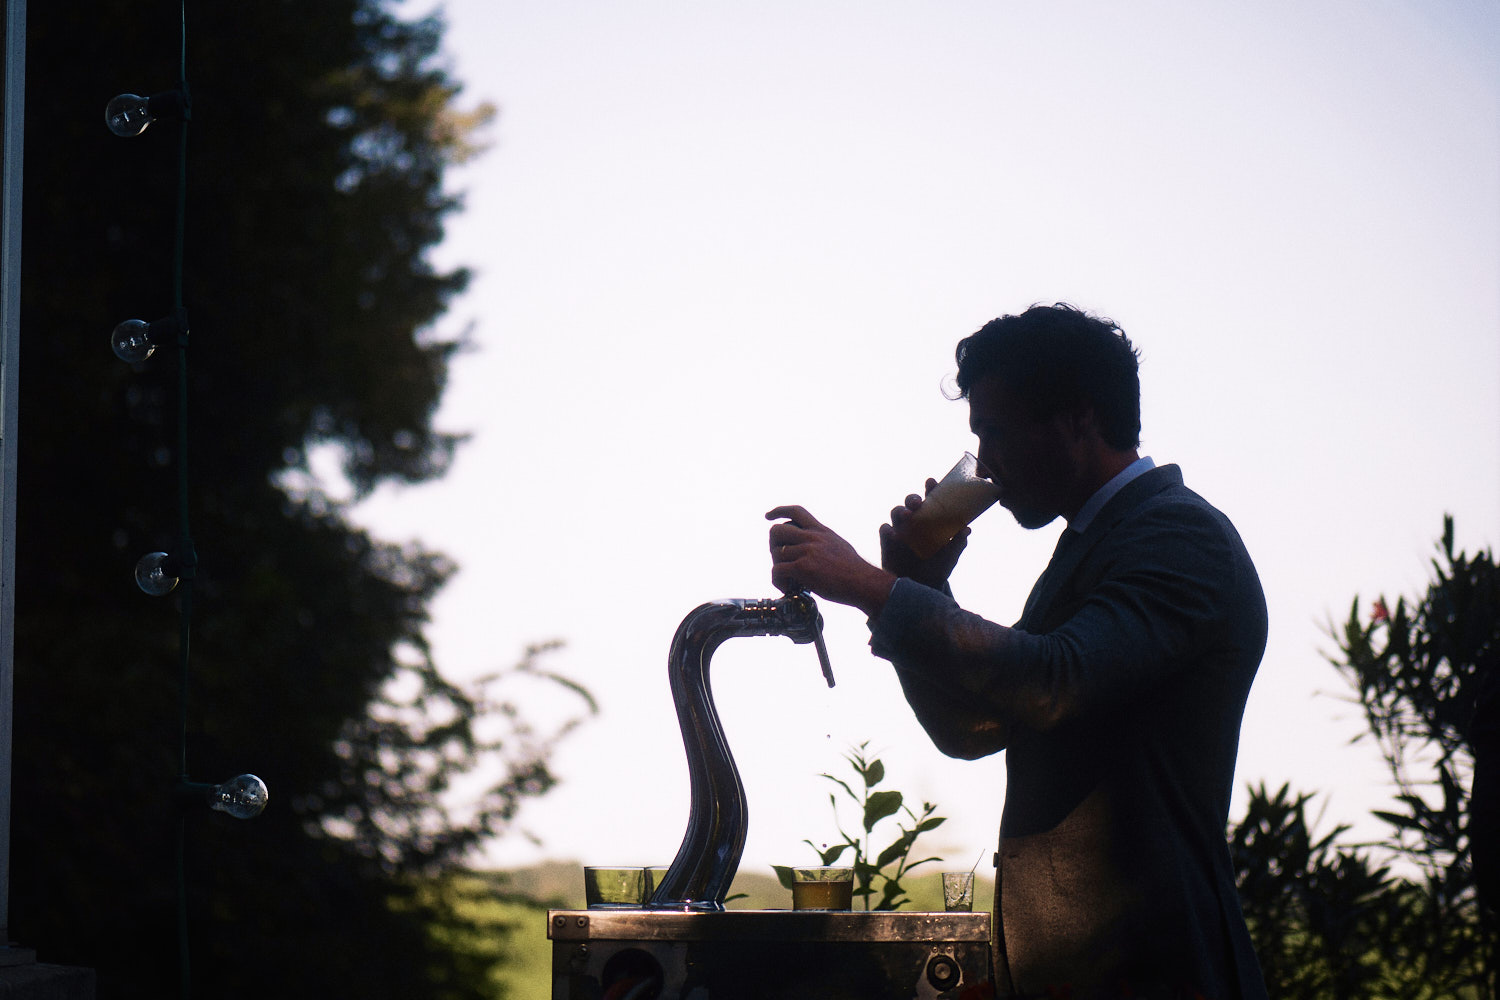 Silhouette of wedding guest drinking from beer tap